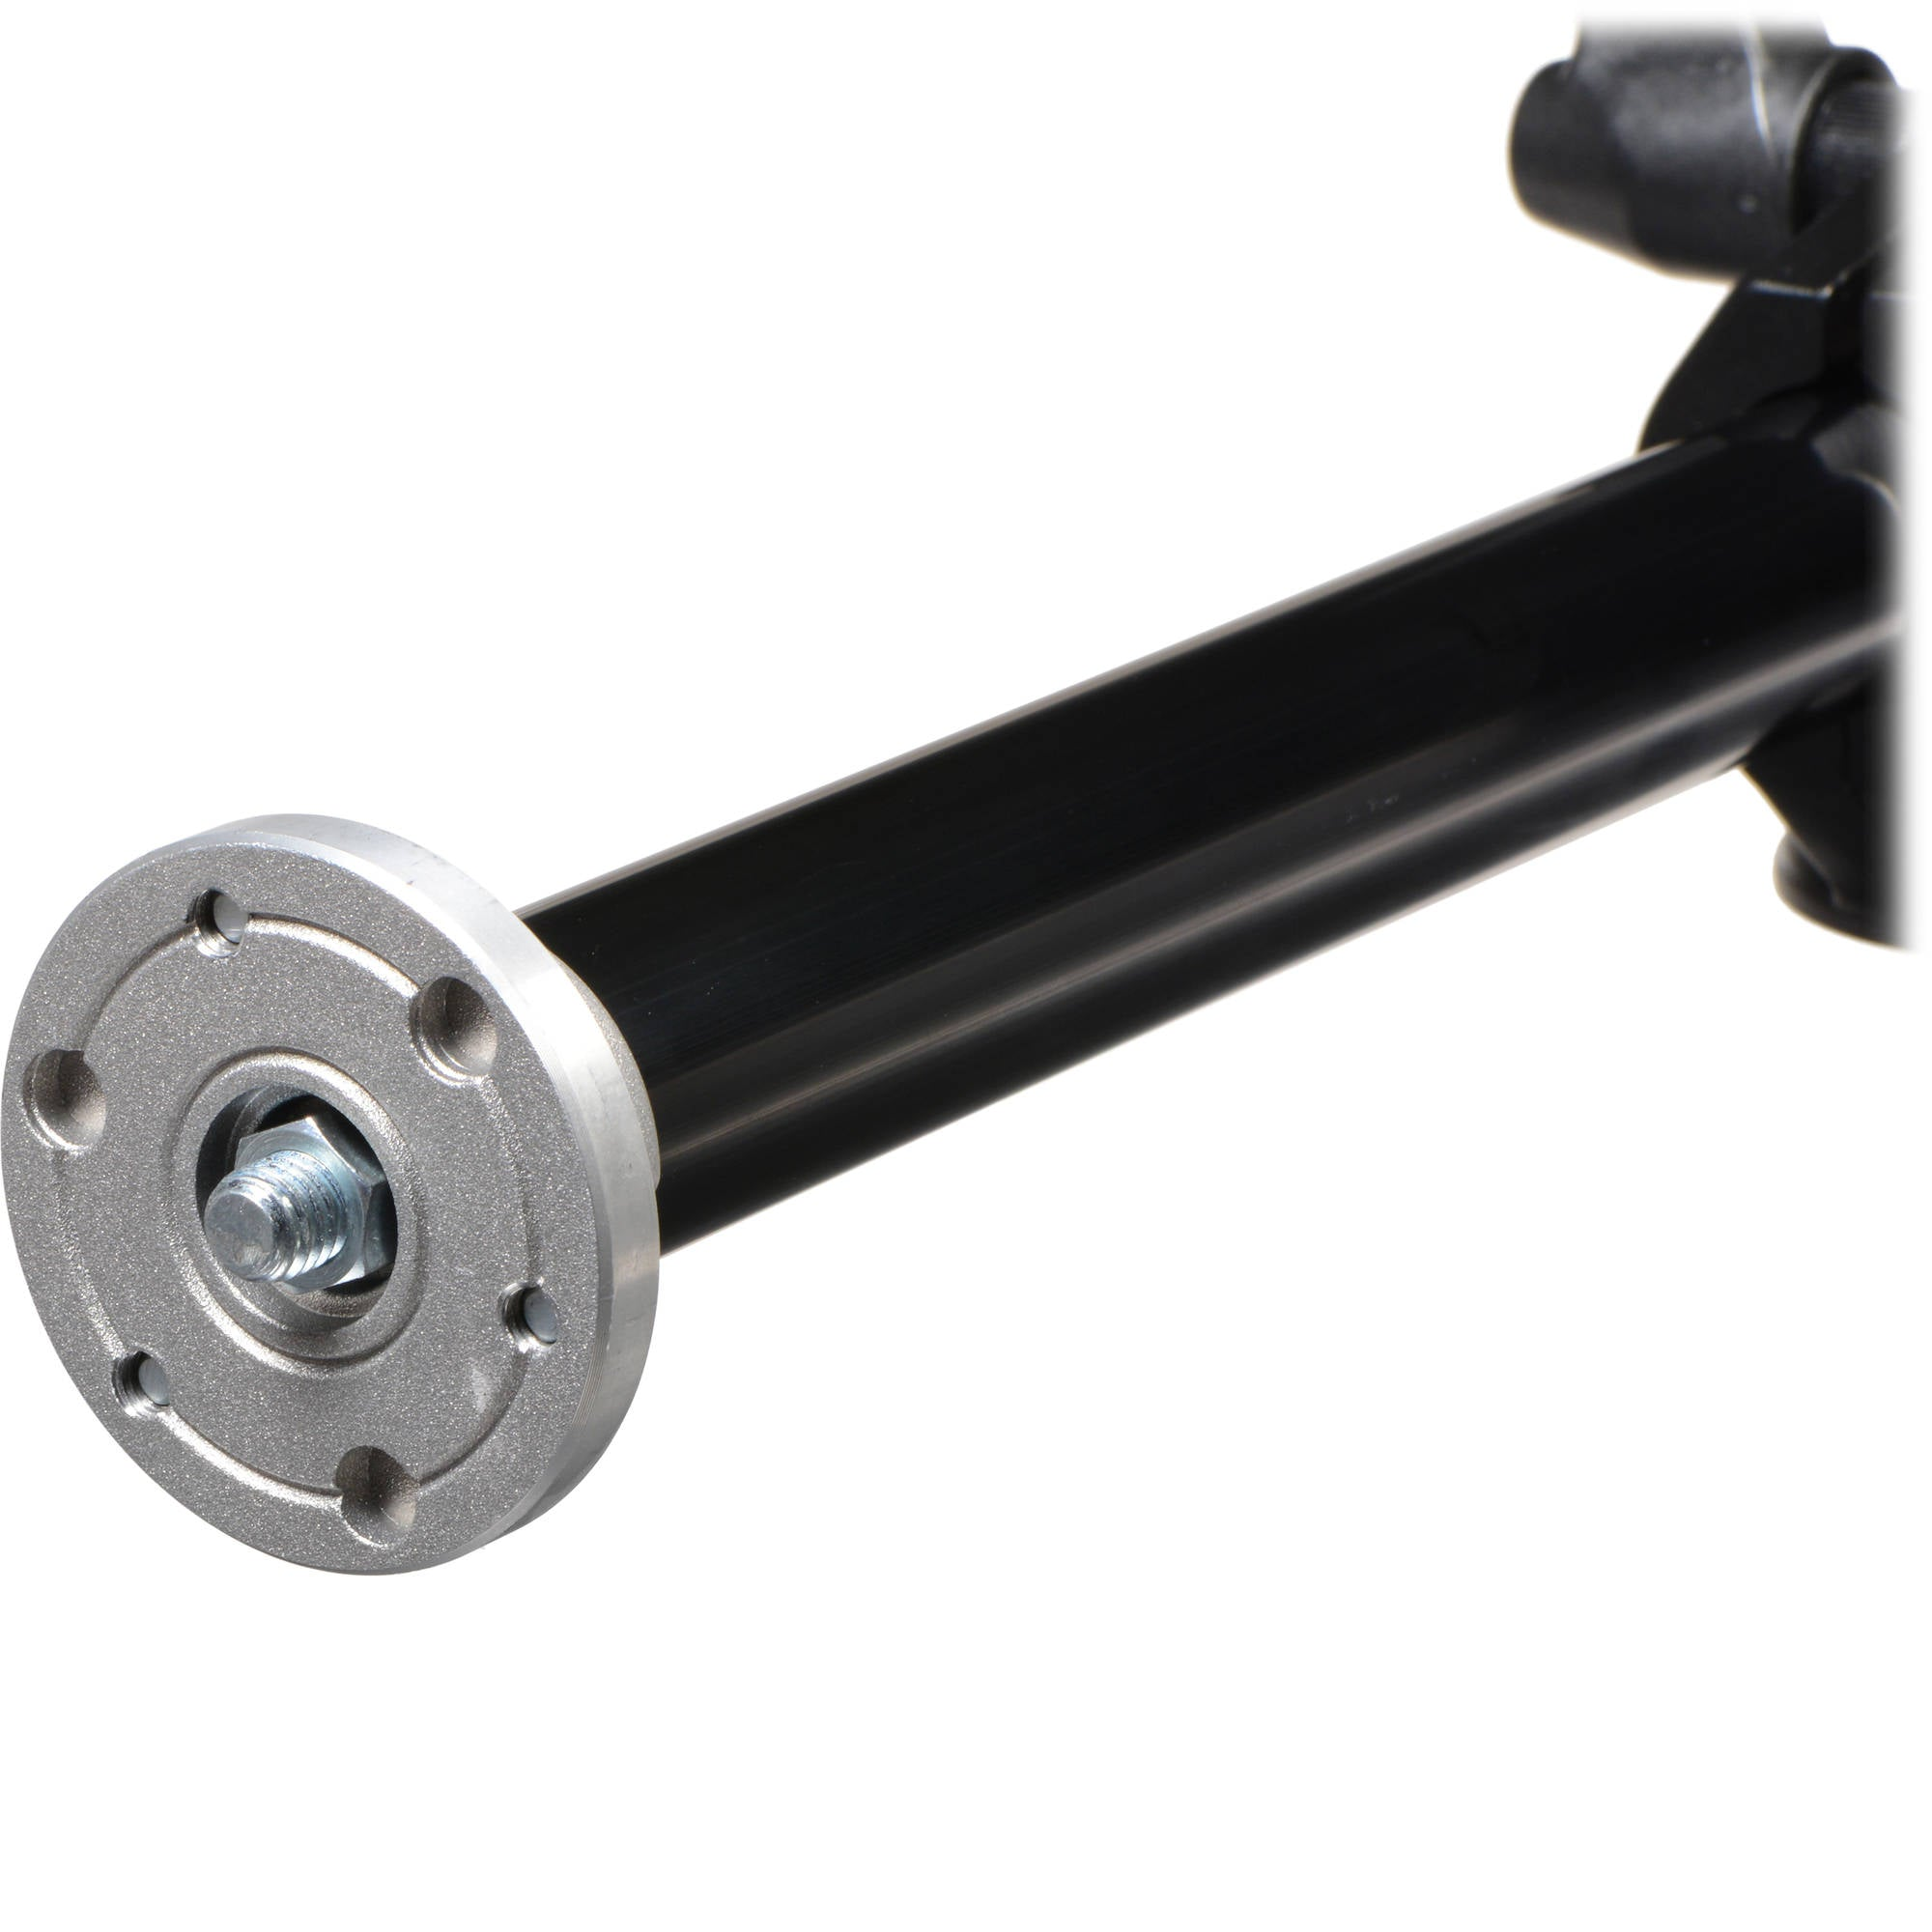 Manfrotto 131D Lateral Side Arm for Tripods (Black)